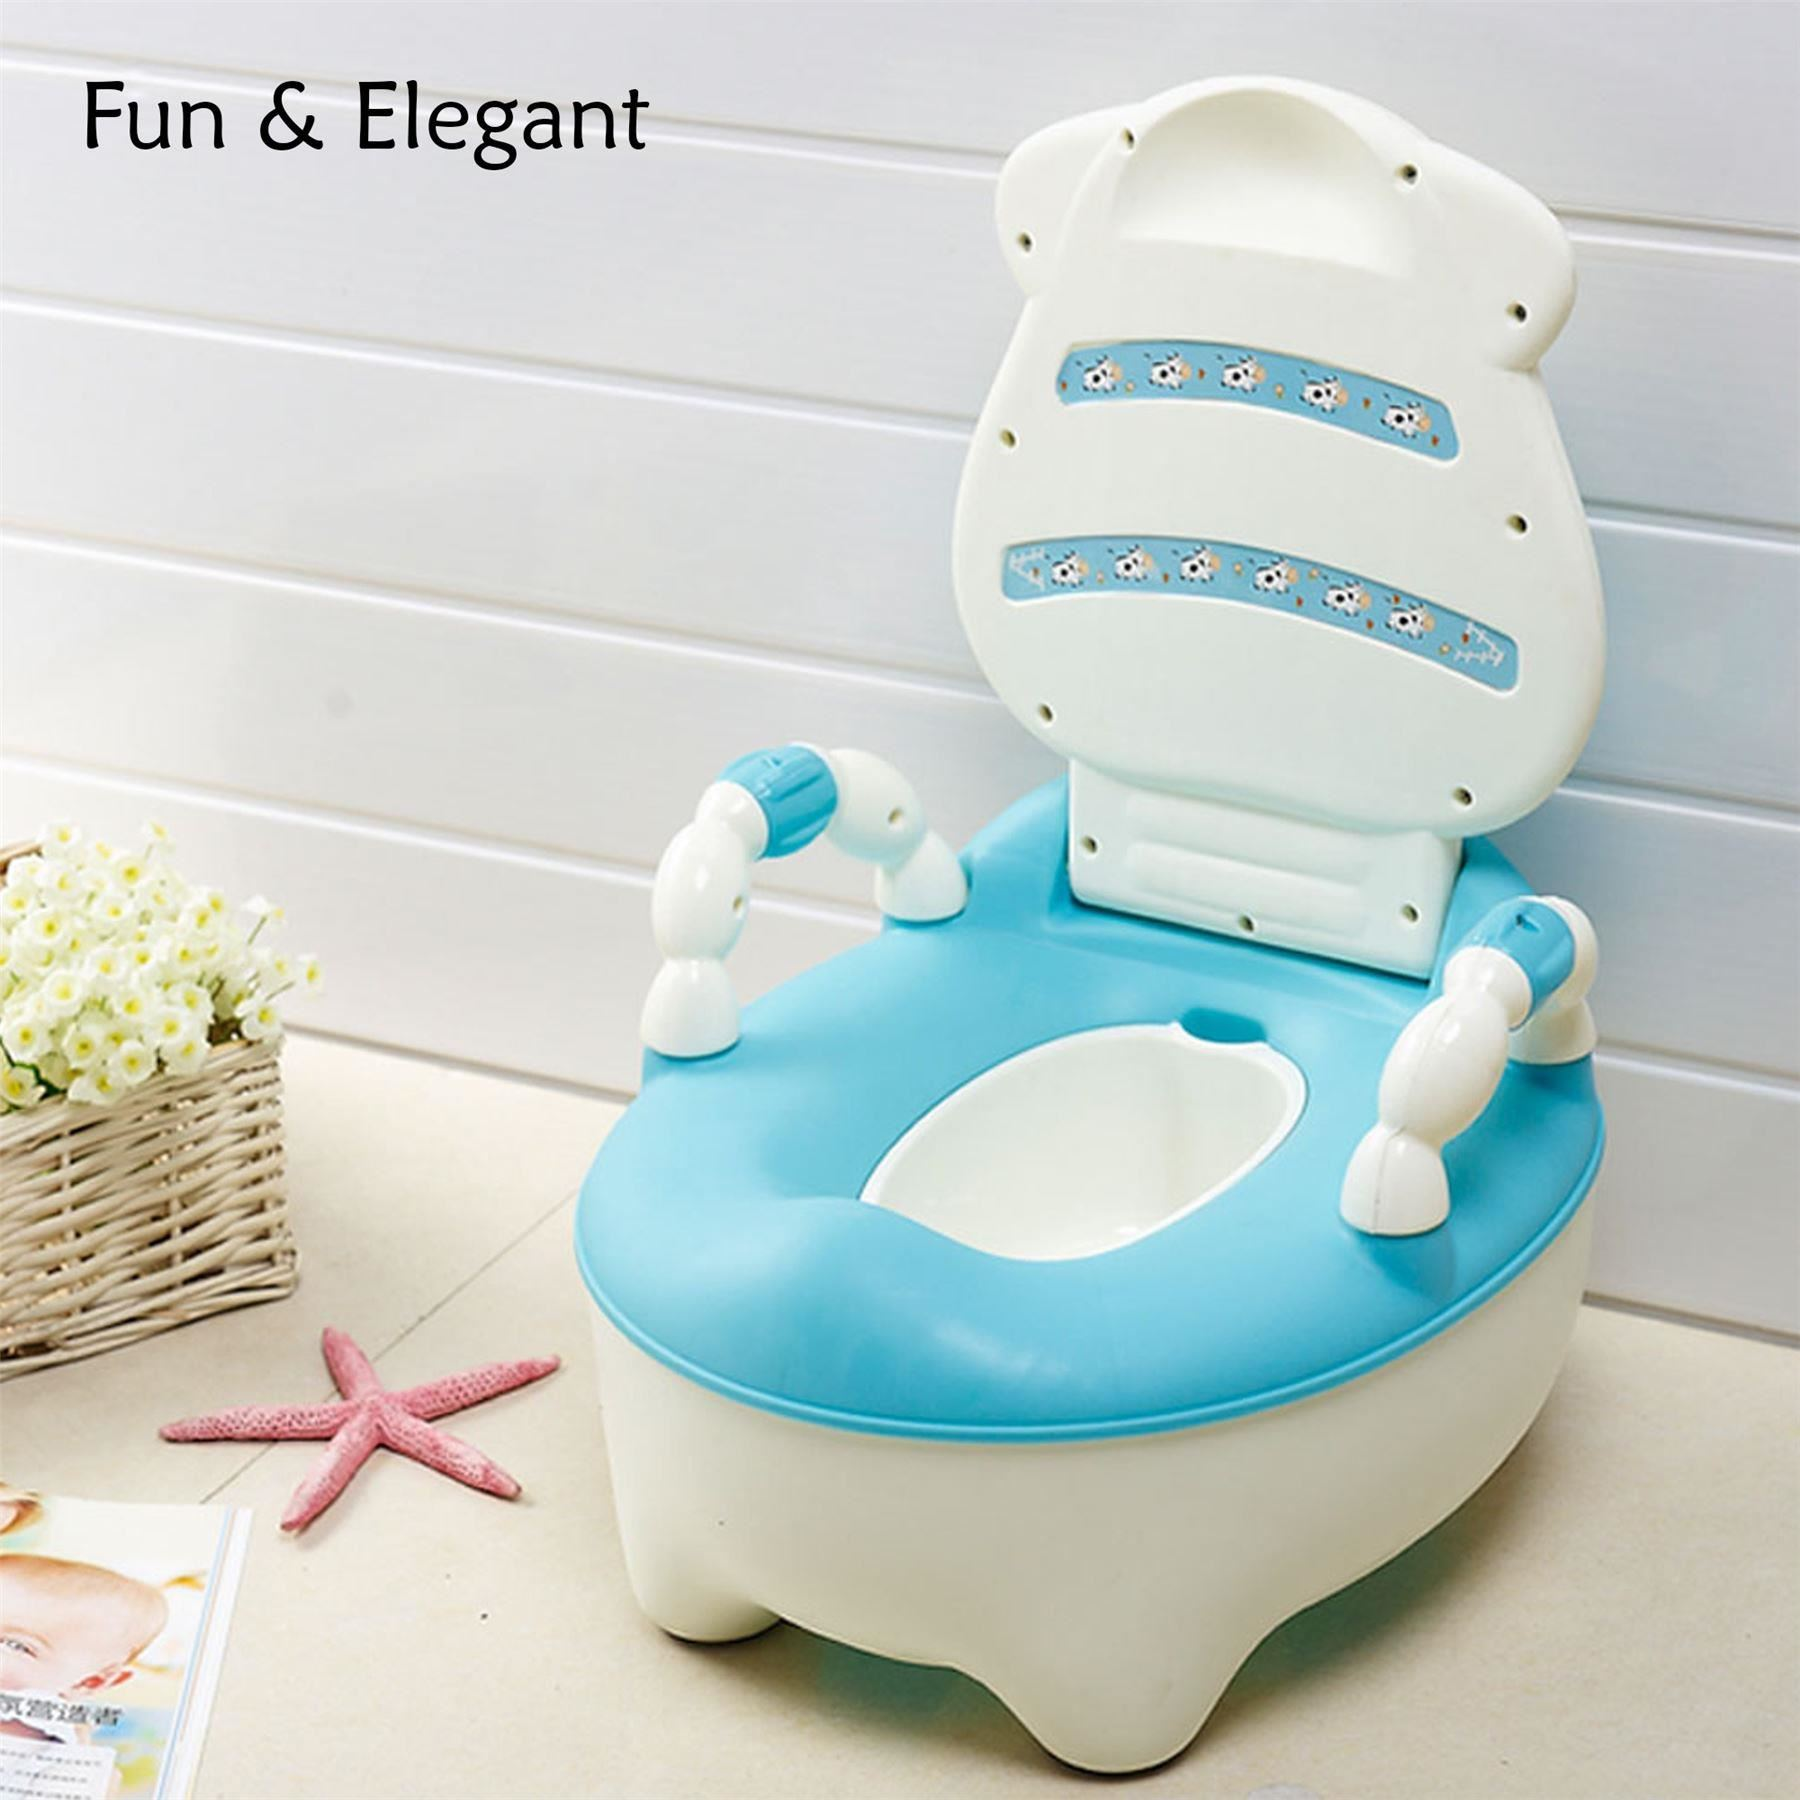 Incredible Toilet Seat For Kids Phenix Arizona Caraccident5 Cool Chair Designs And Ideas Caraccident5Info